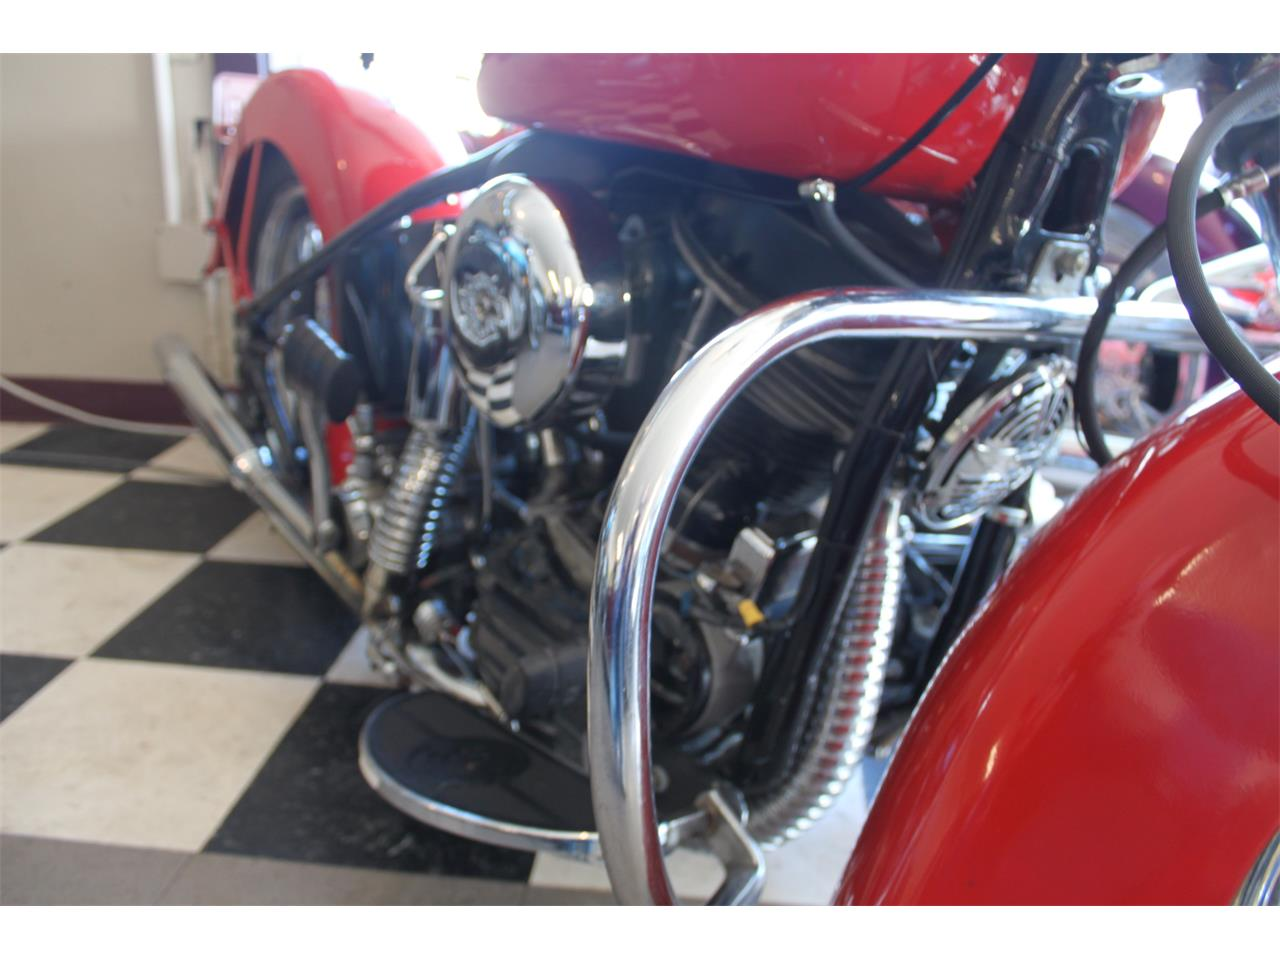 1950 Harley-Davidson Motorcycle for sale in Carnation, WA – photo 18